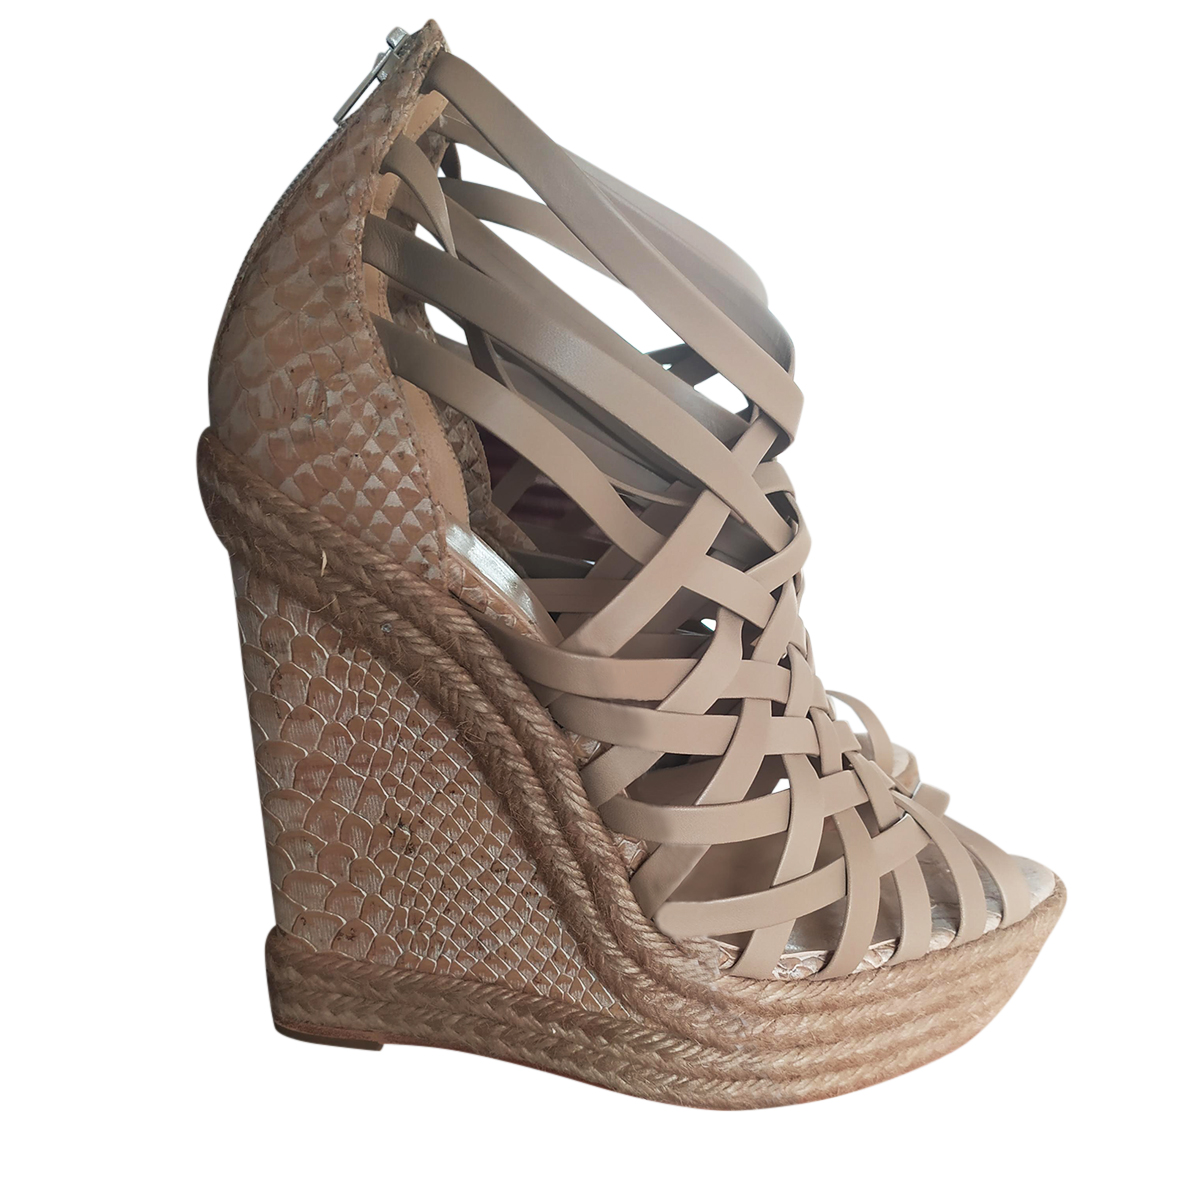 Christian Louboutin Leather & Python Espadrille Strappy Wedges